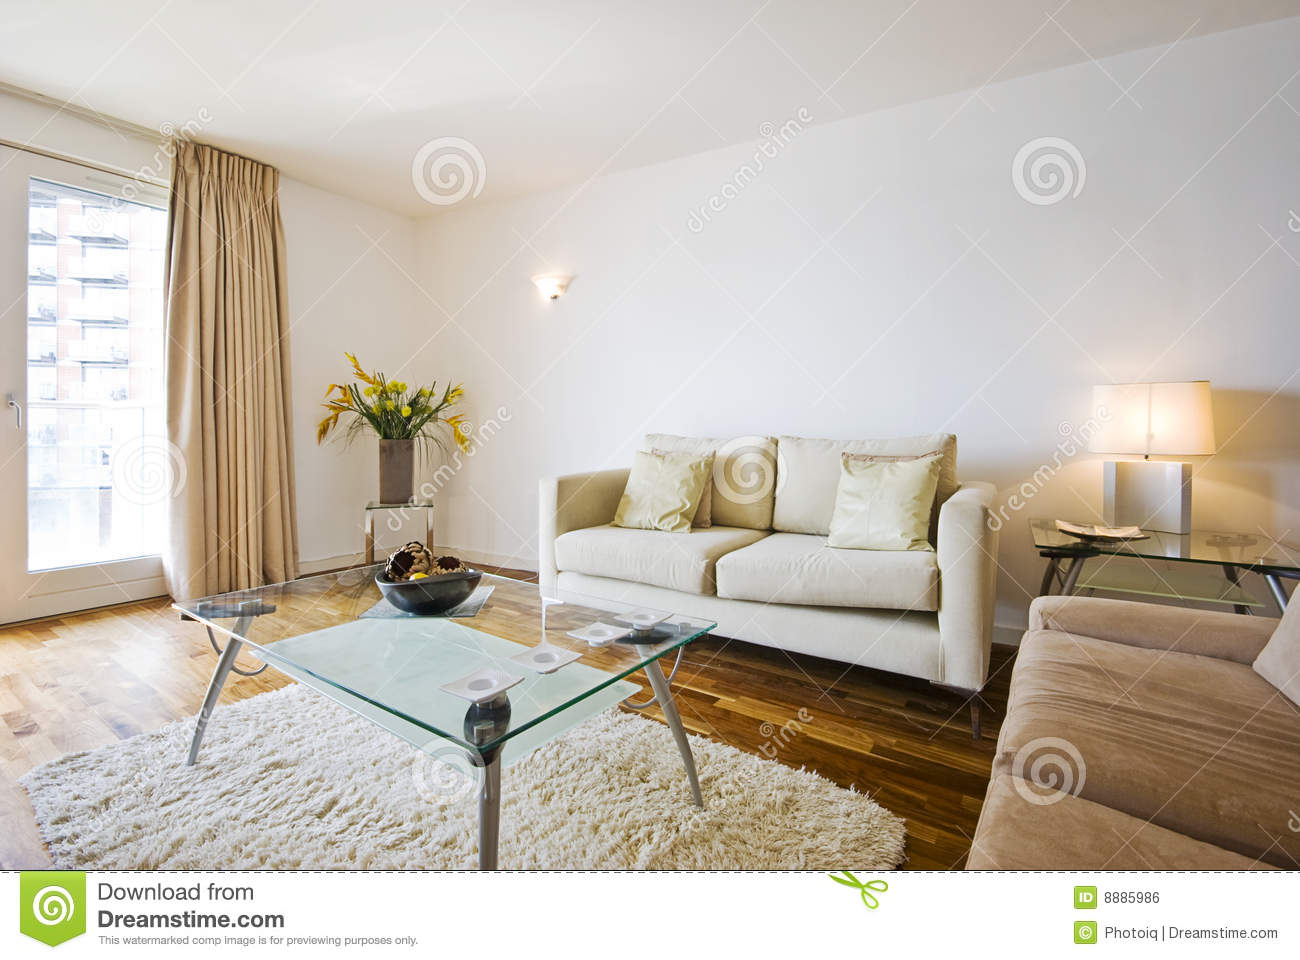 Smart living room royalty free stock image image 8885986 for Online drawing room